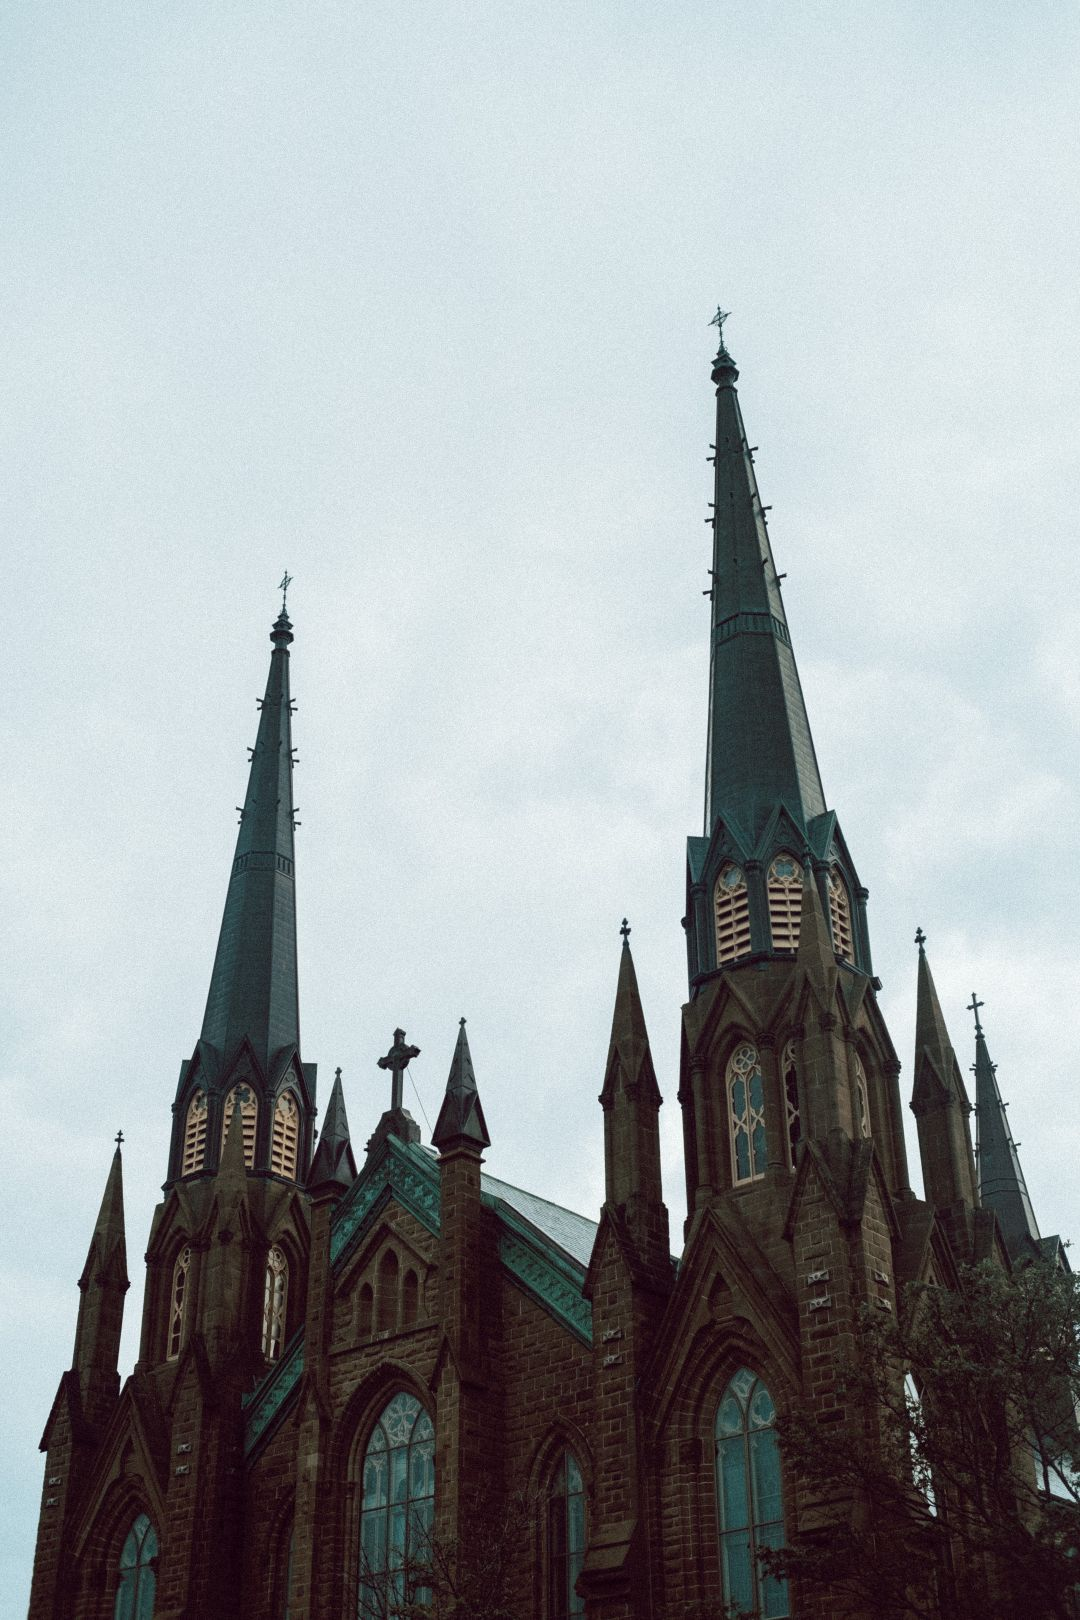 A photo of PEI Cathedral Steeples